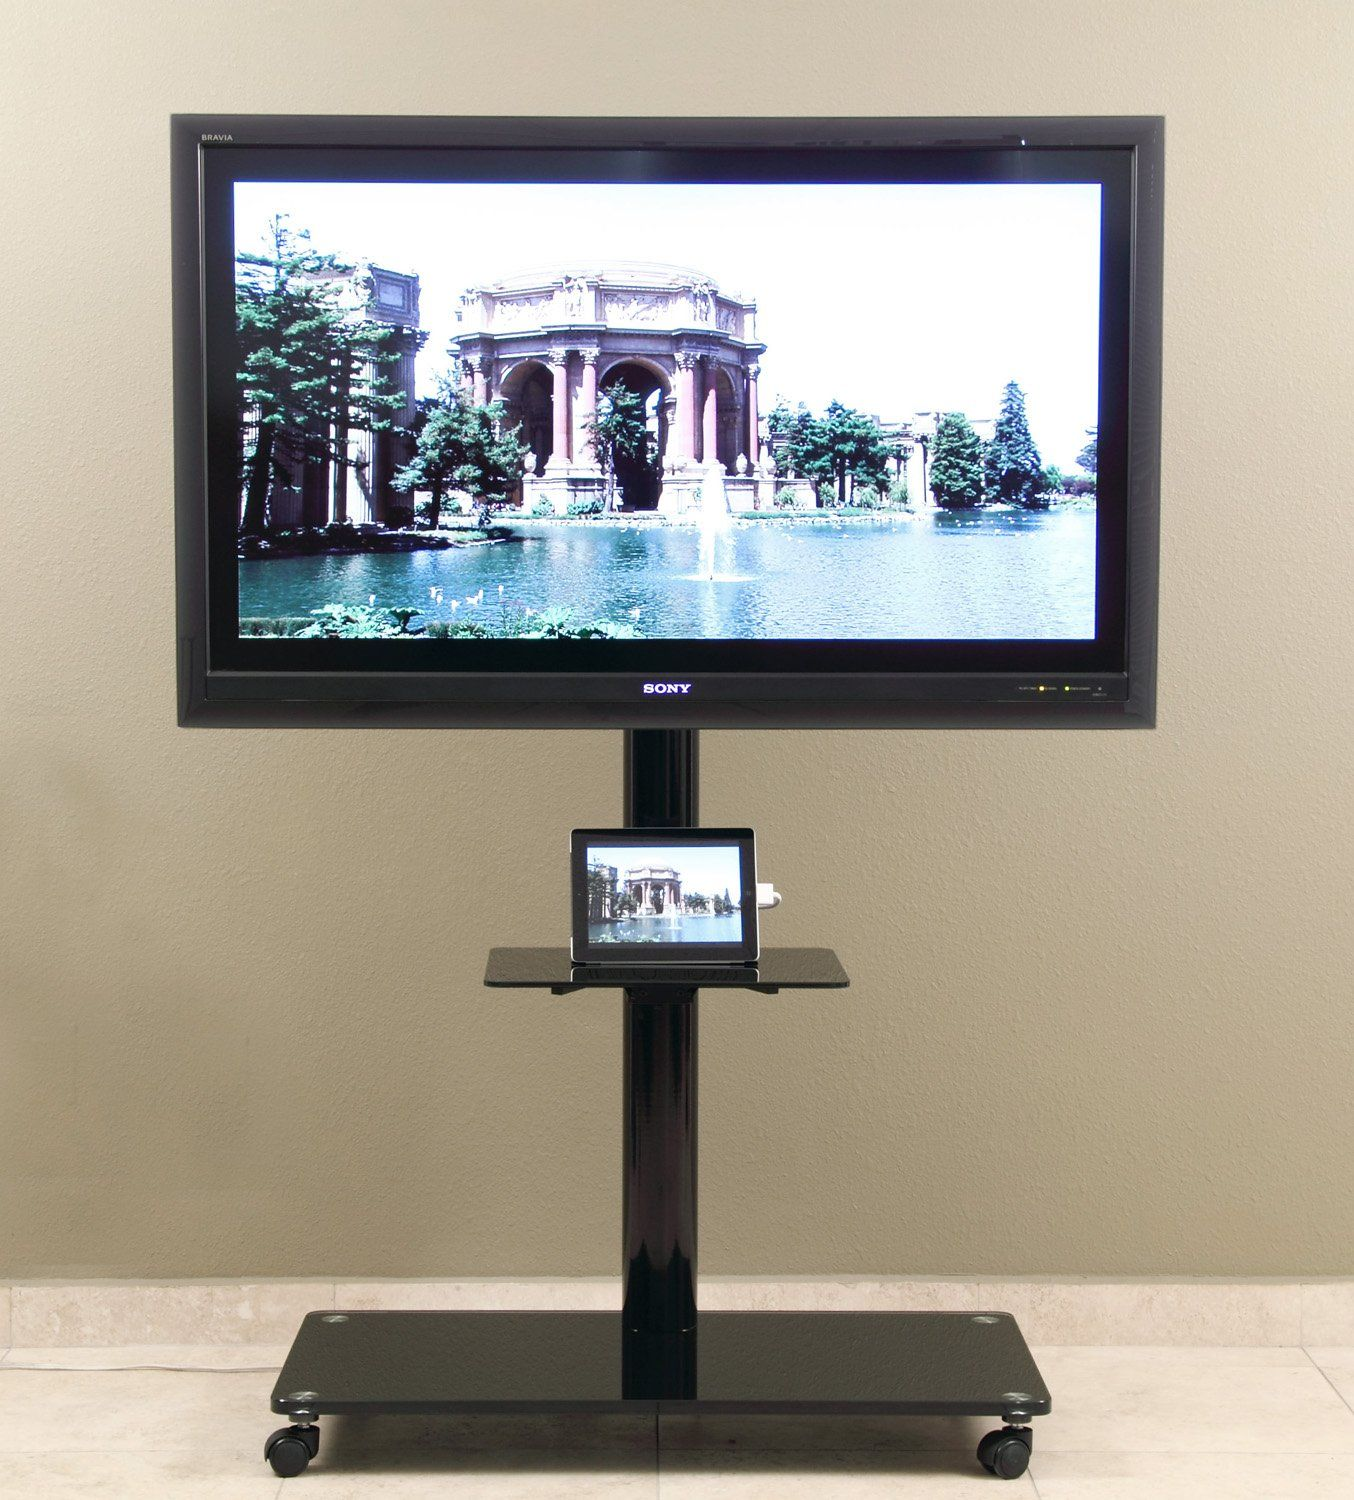 Tv Stands For Lcd Tvs 35 Inch Television Ask Engadget Hd Best 30 To 35 Inch Hdtv Sony